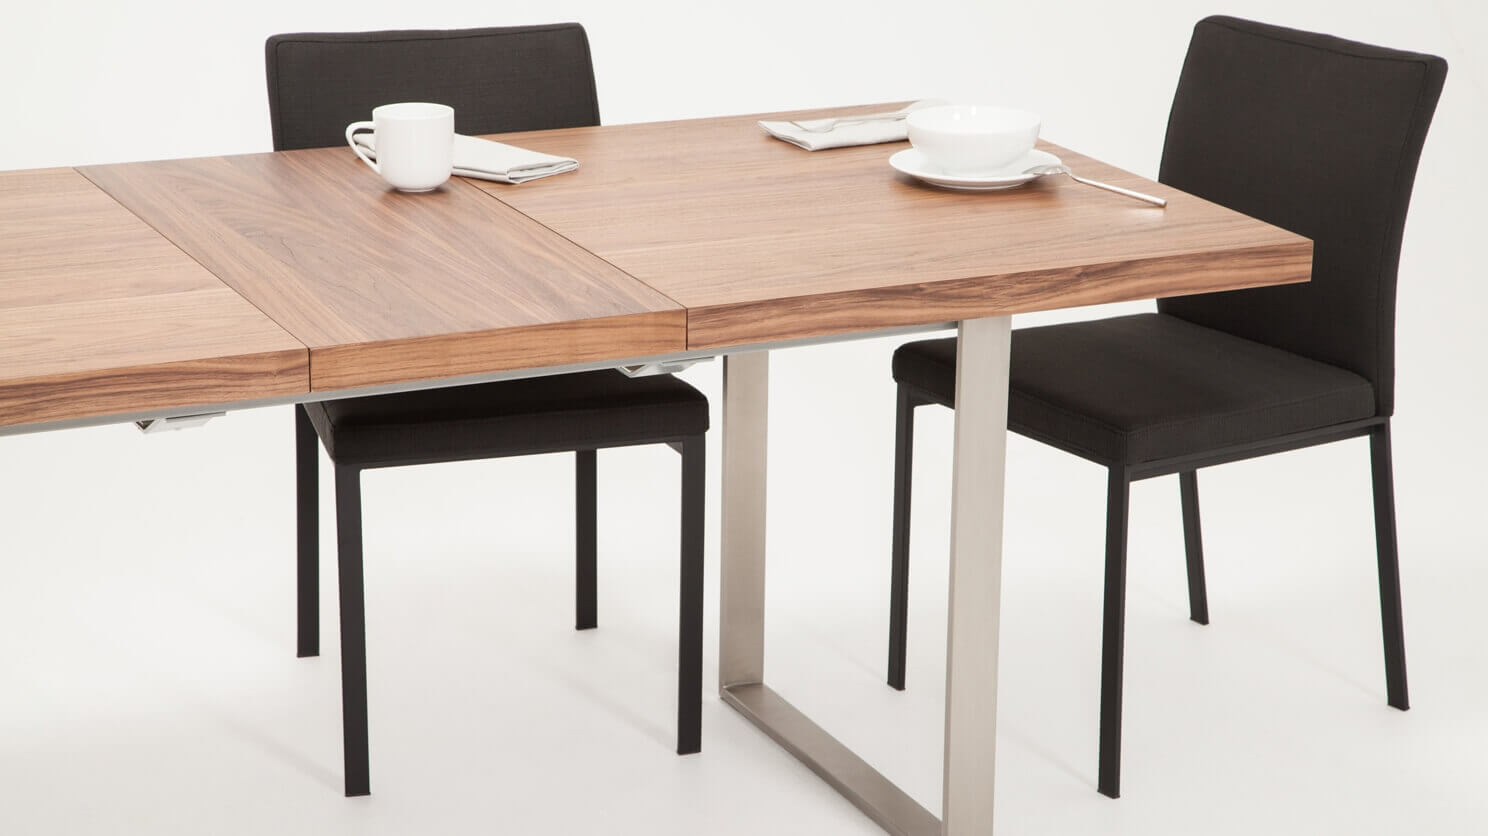 Hatch Dining Table Eq3, Eq3 Dining Room Tables